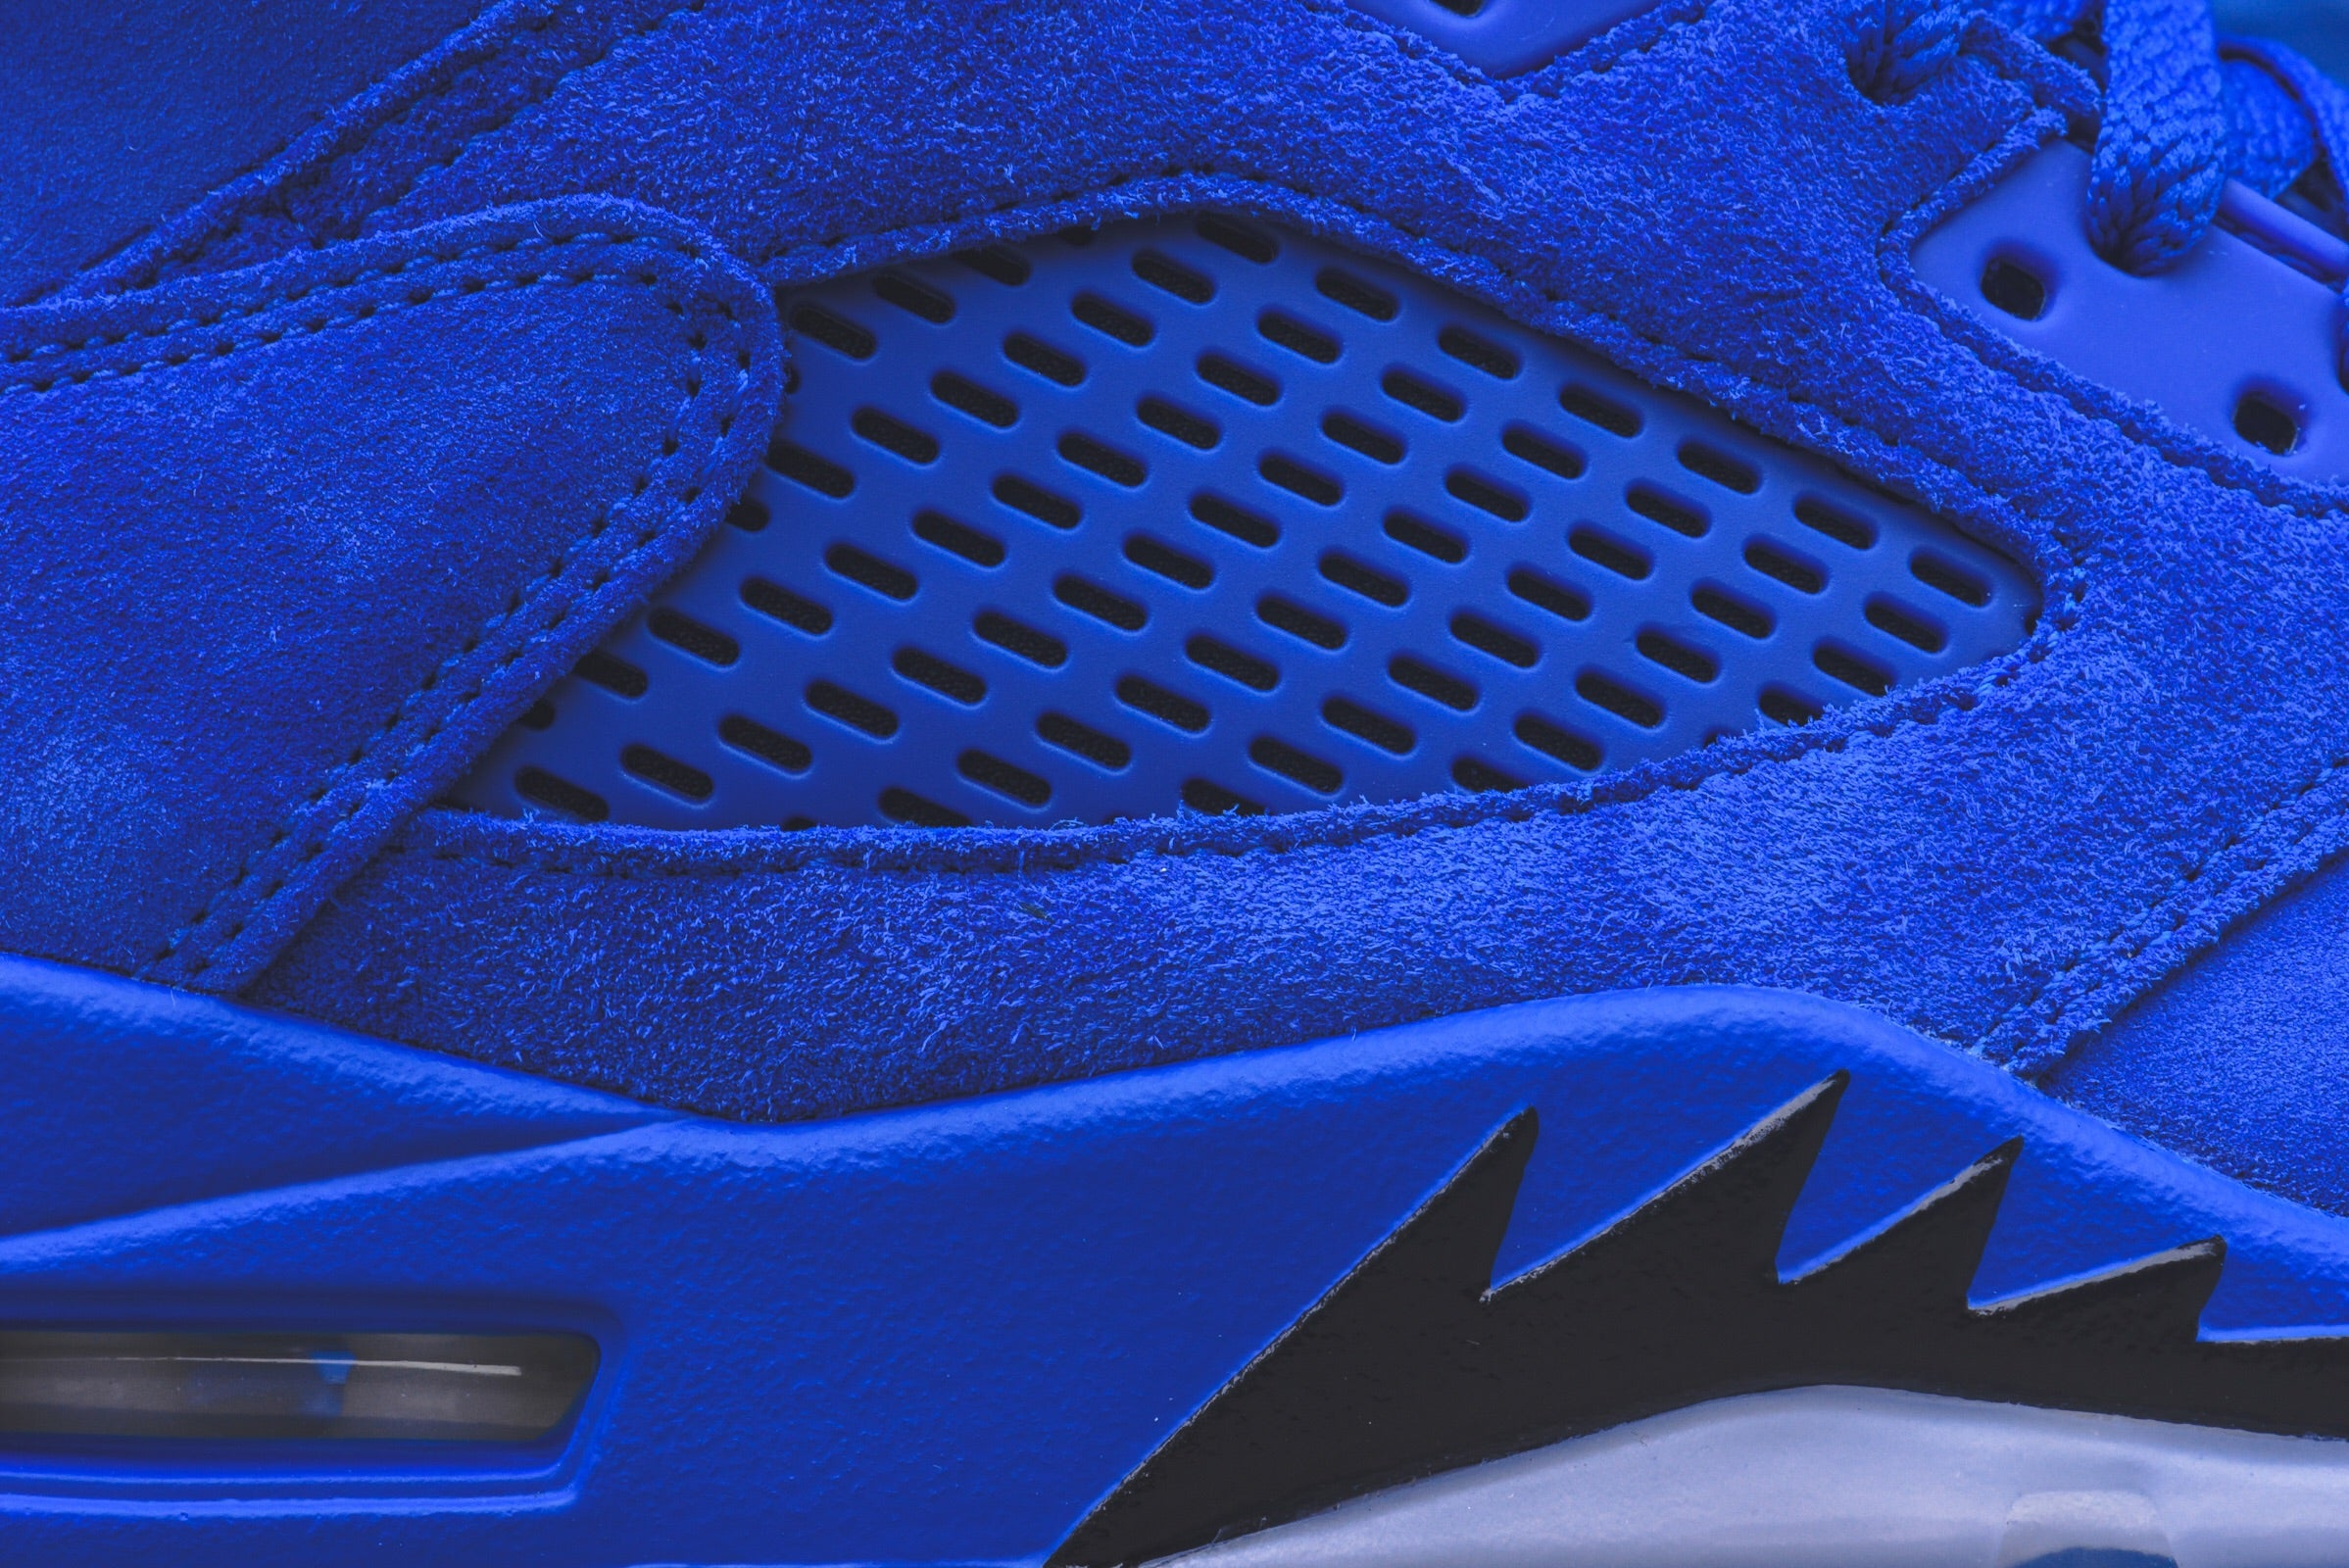 Nike Air Jordan 5 Retro - Royal / Black